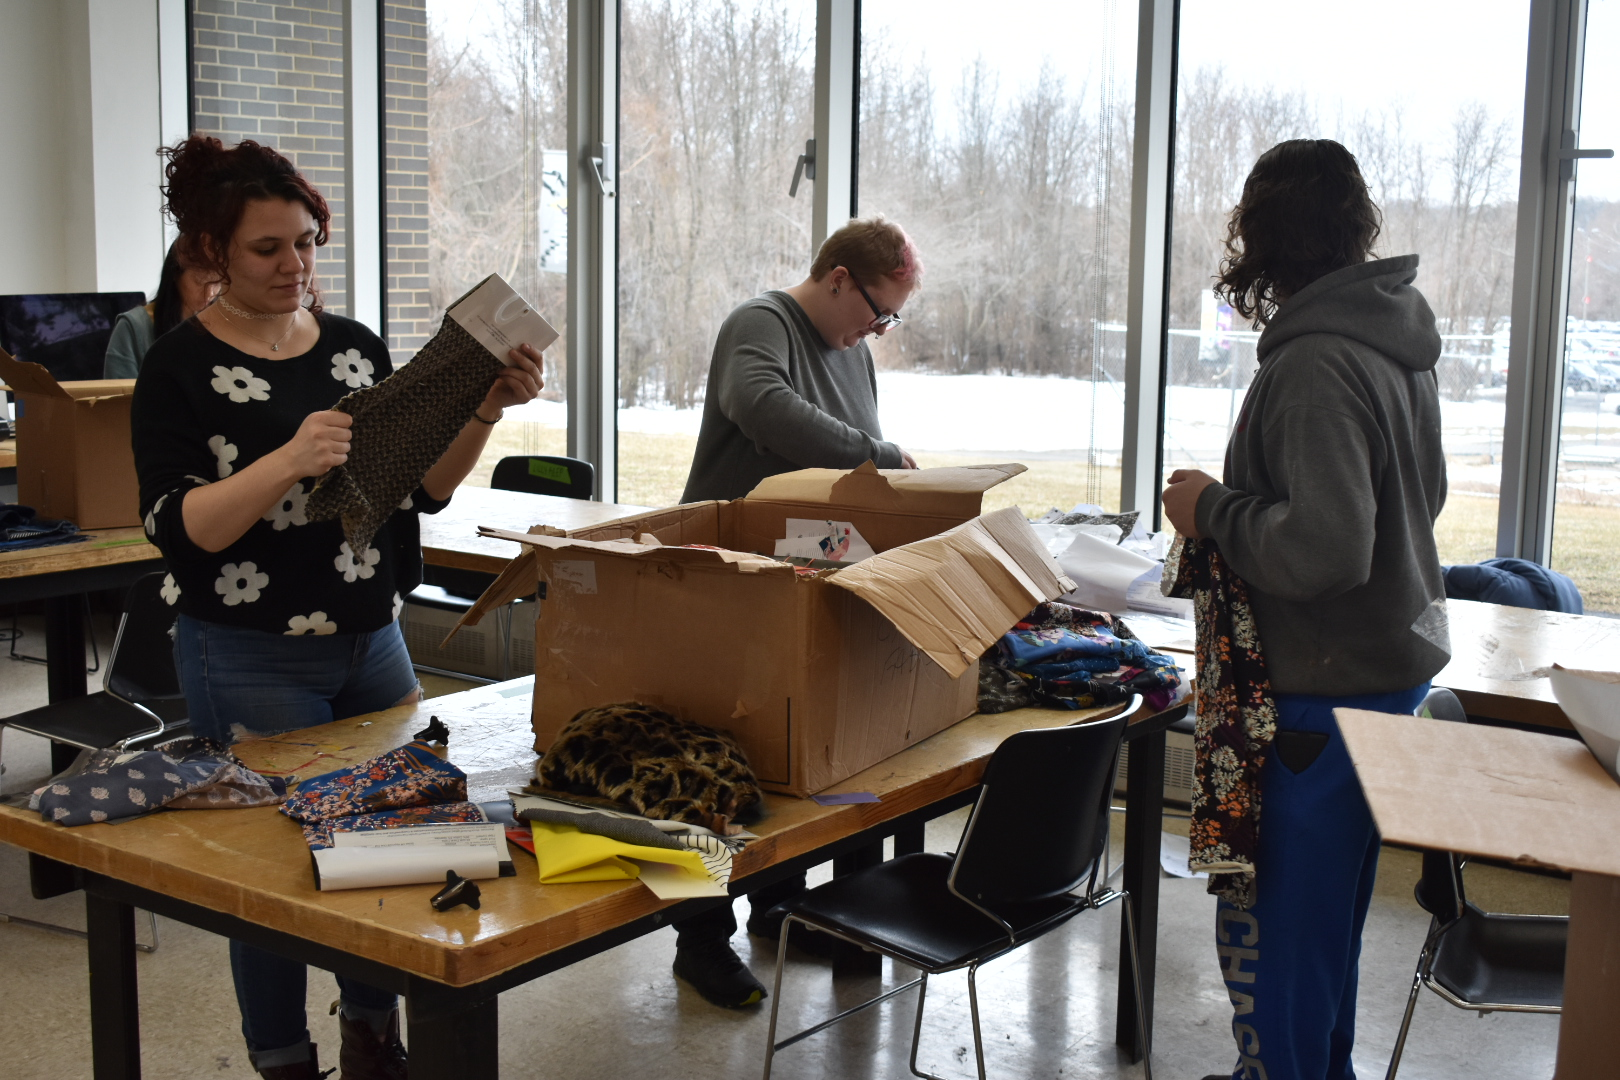 Students sort fabric. (Photo by Sierra Petro)